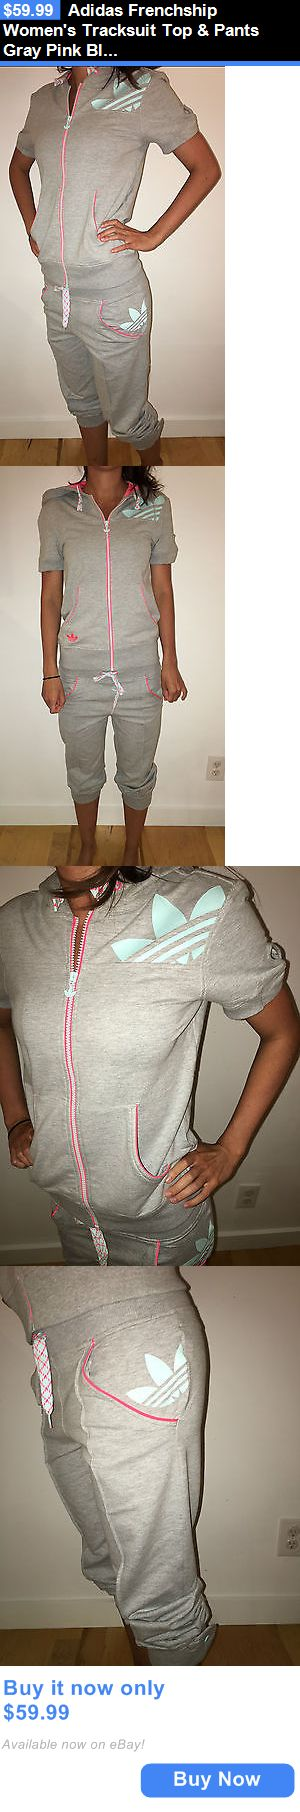 Women Athletics: Adidas Frenchship Womens Tracksuit Top And Pants Gray Pink Blue Z62991 Nwt BUY IT NOW ONLY: $59.99